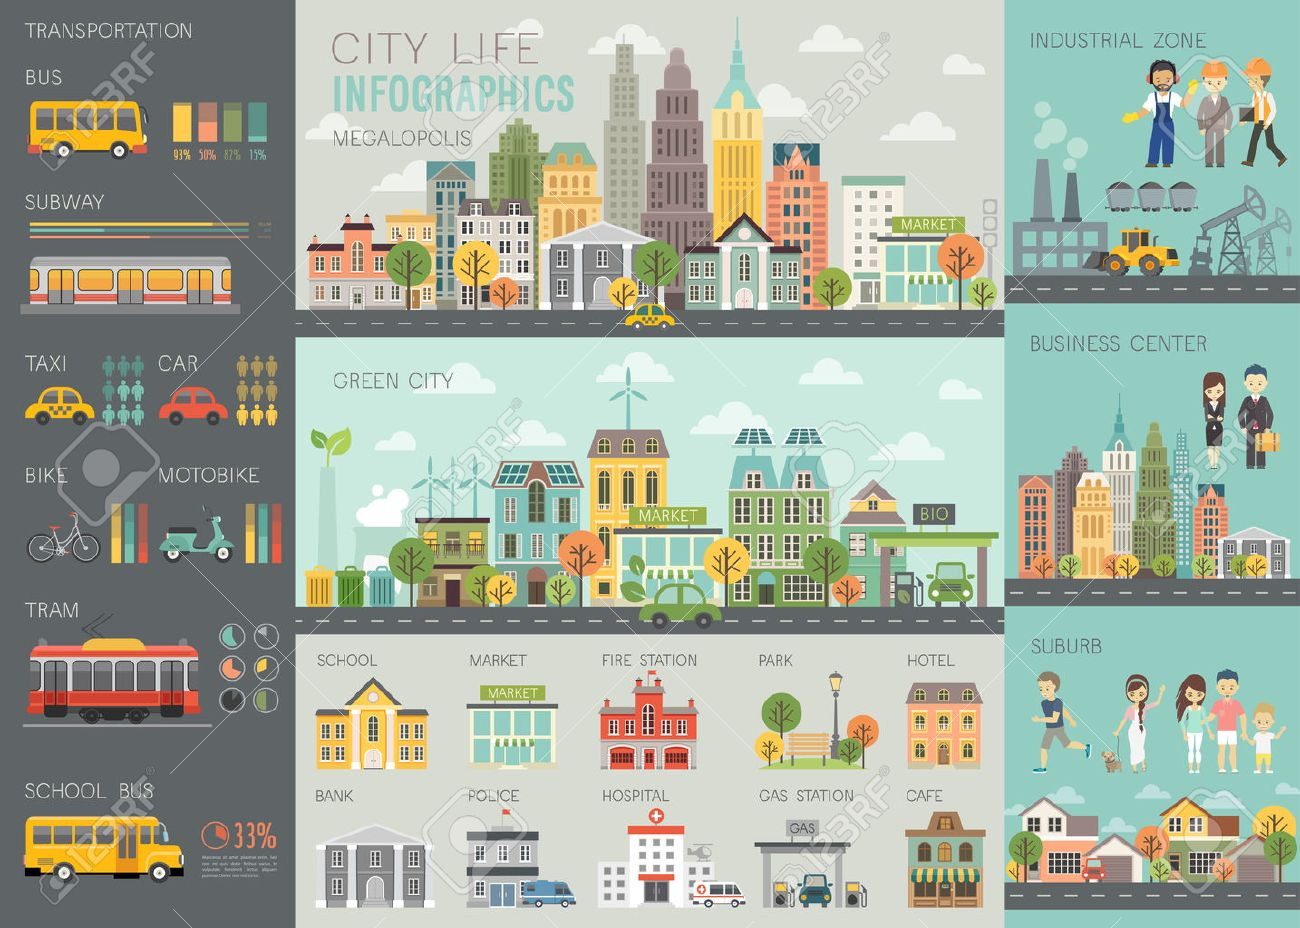 City life Infographic set with charts and other elements. - 53370629